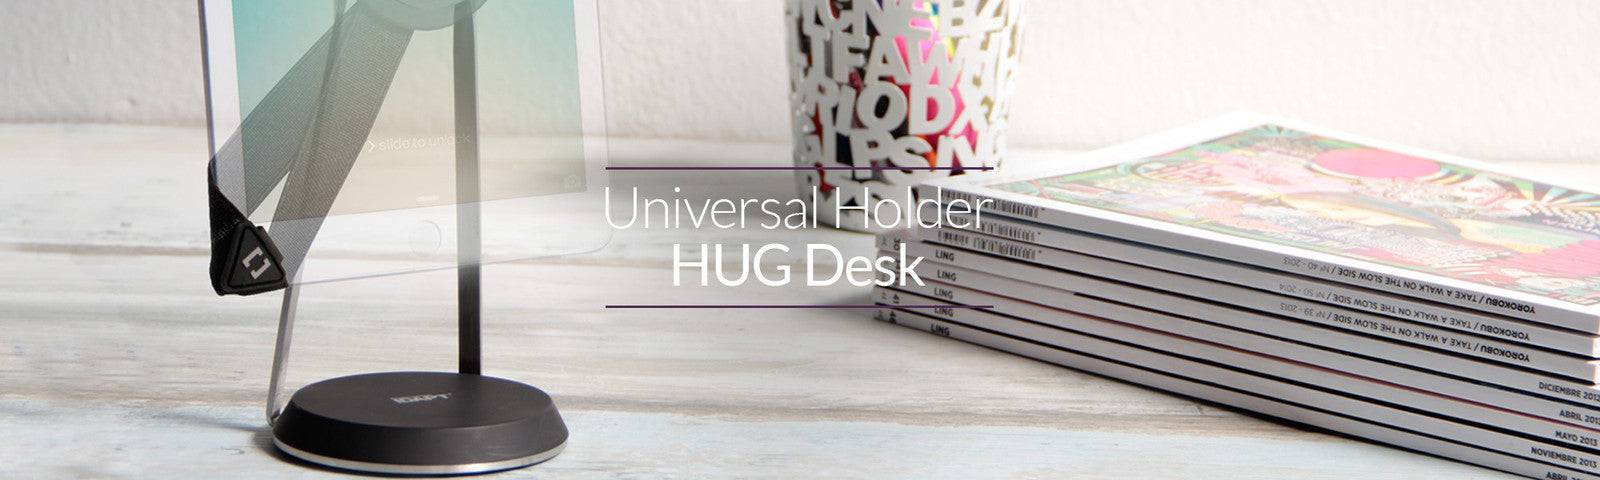 Universal Holder HUG Desk